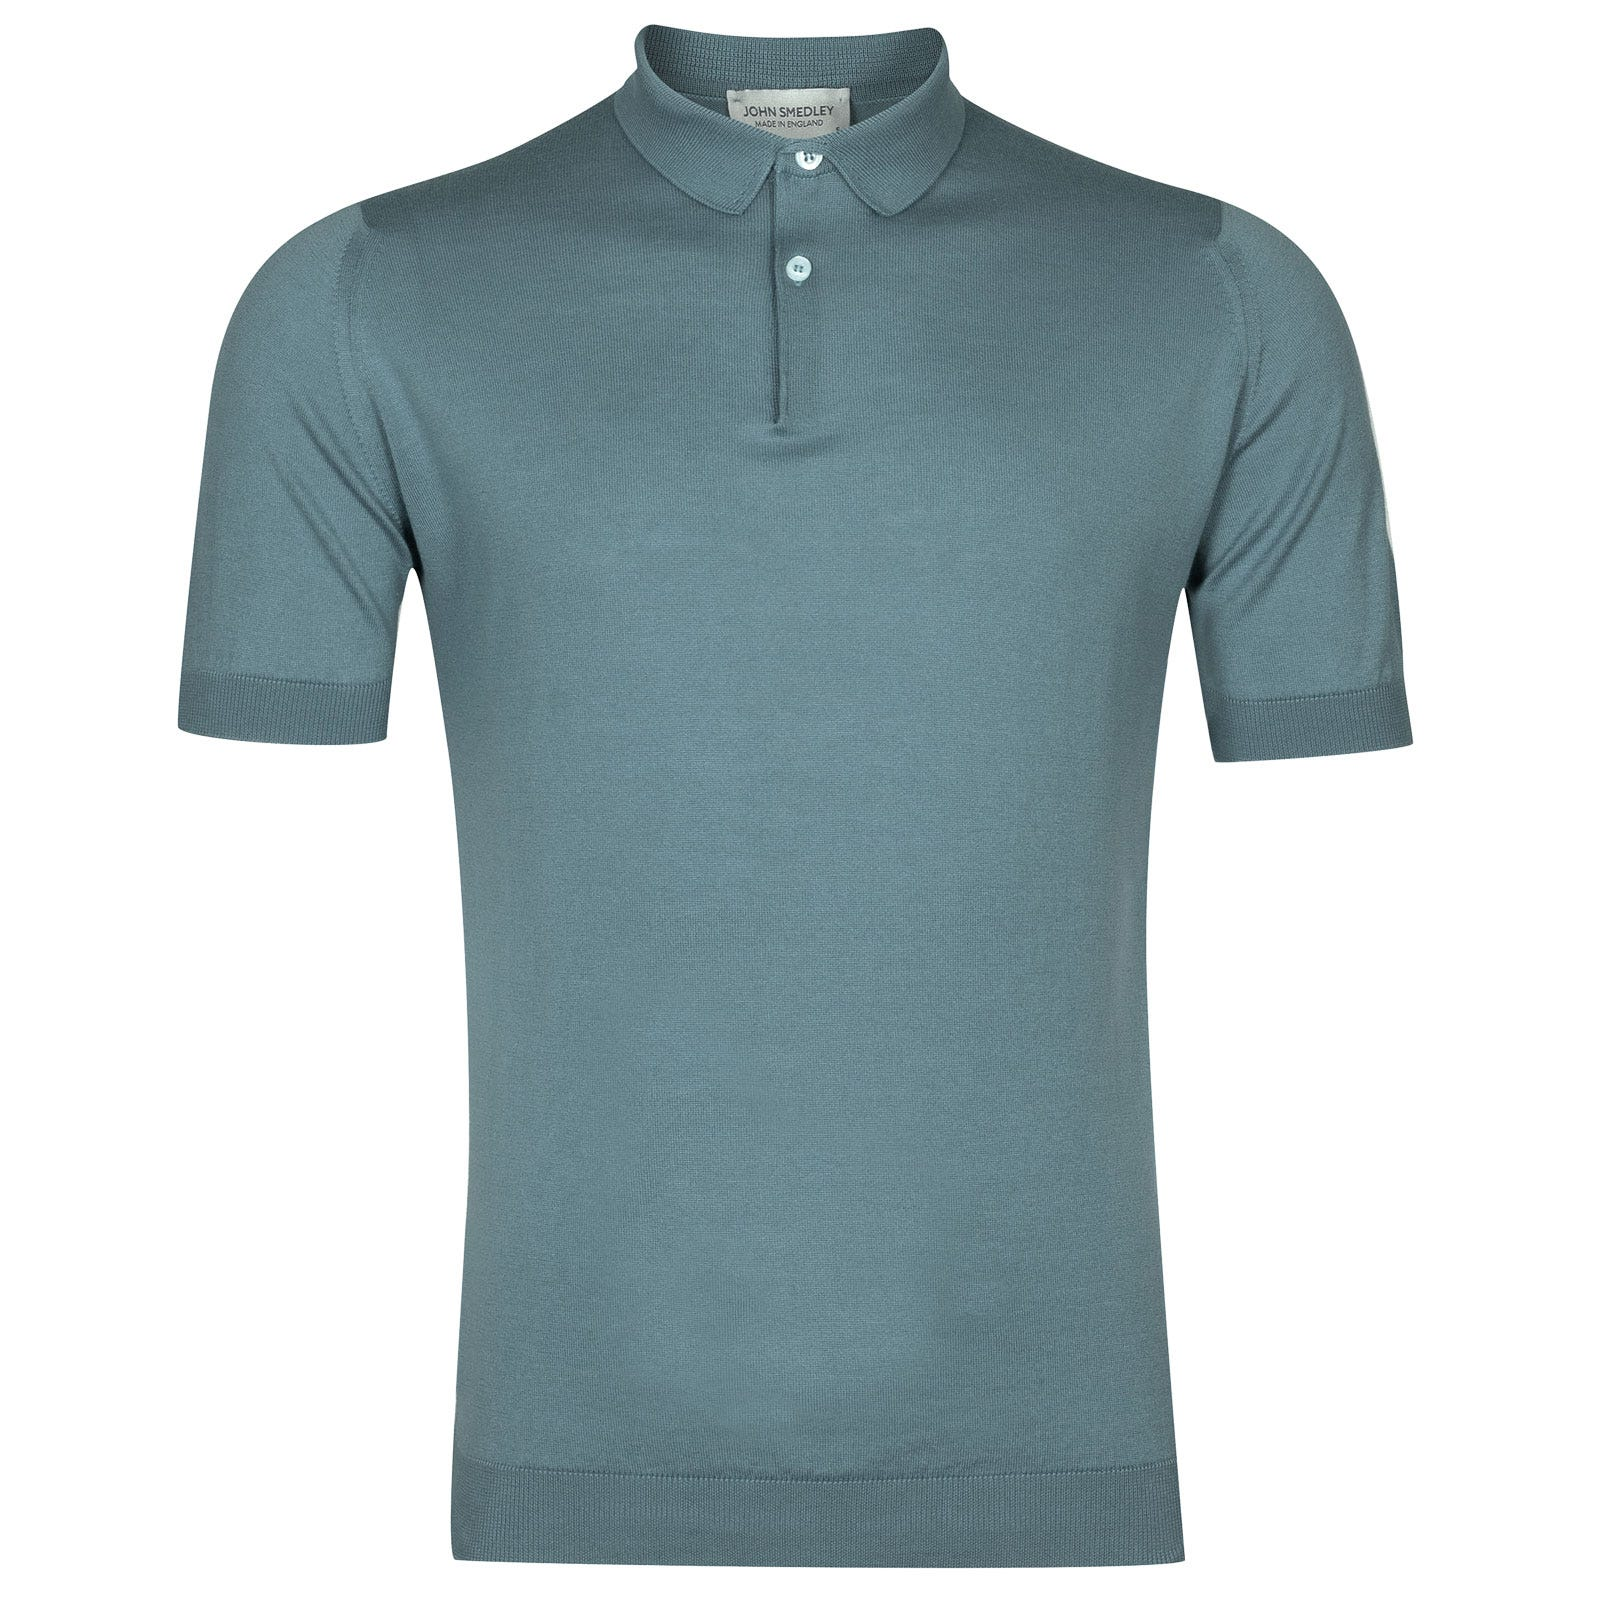 John Smedley rhodes Sea Island Cotton Shirt in Summit Blue-S